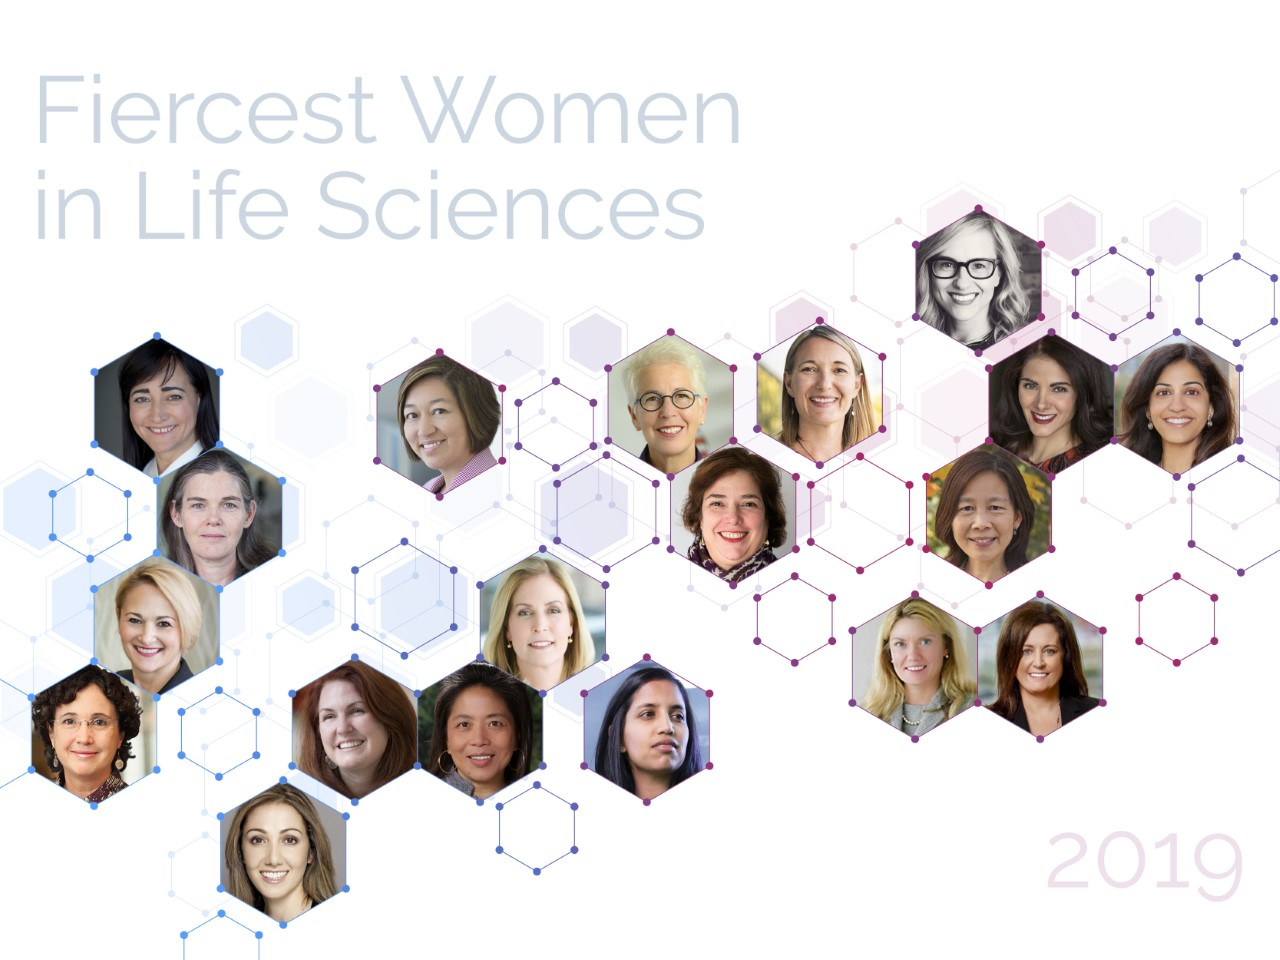 2019's Fiercest Women in Life Sciences https://lnkd.in/en2tW9f this week from Fierce Pharma #LifeSciences #Pharma